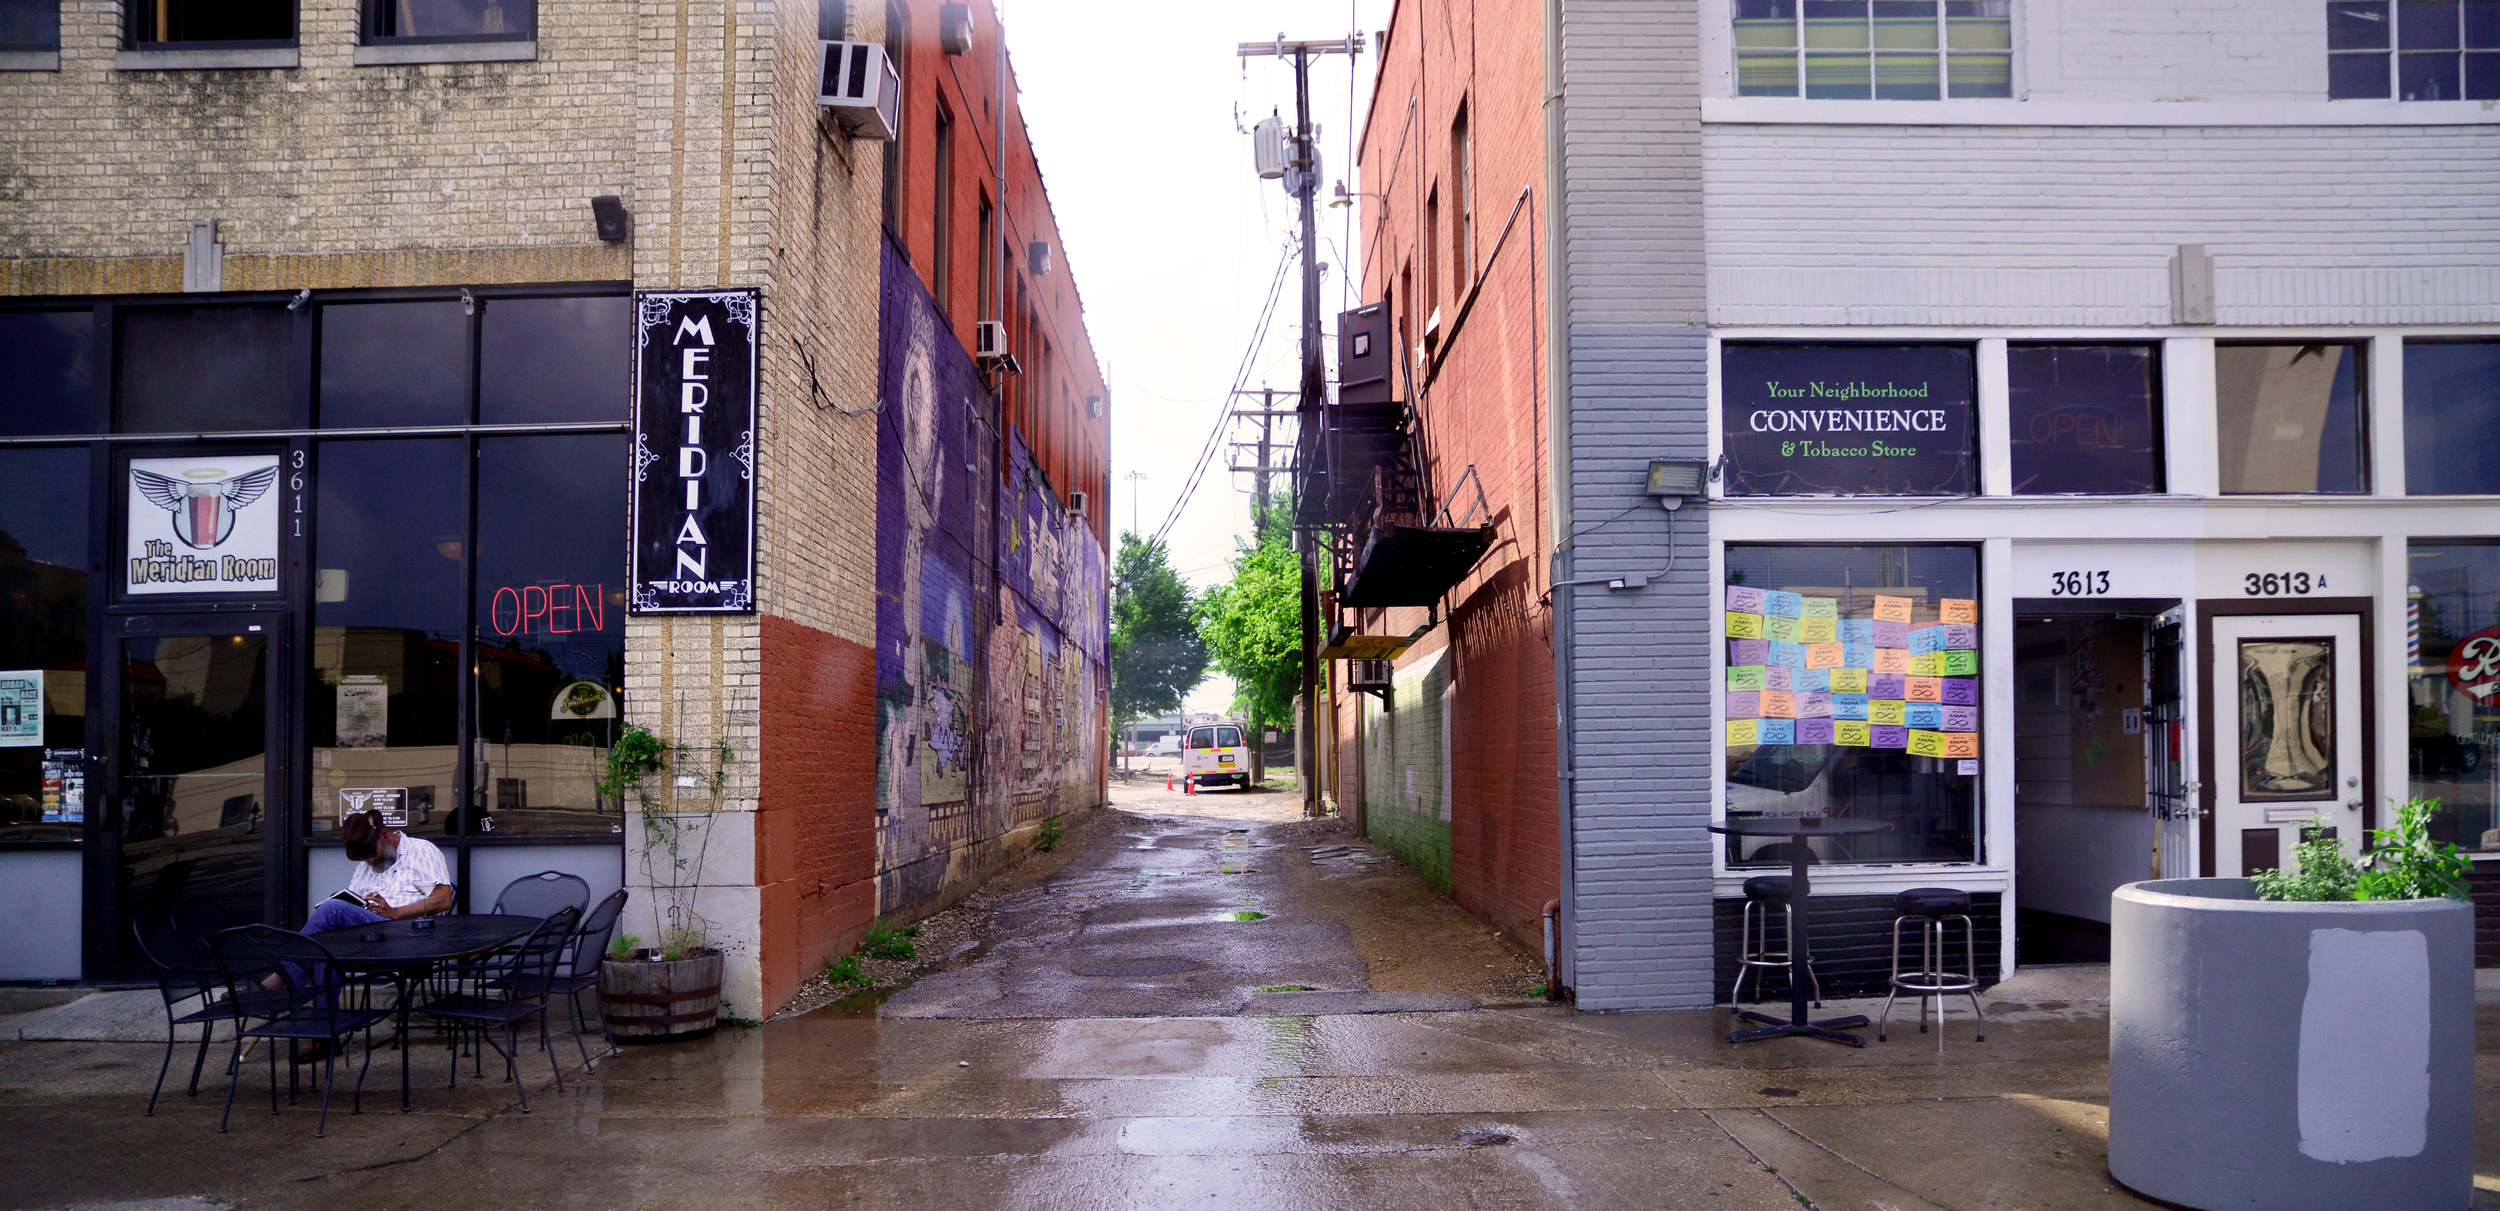 View down an alley along Parry Ave. All photographs by Charlie Pruitt.